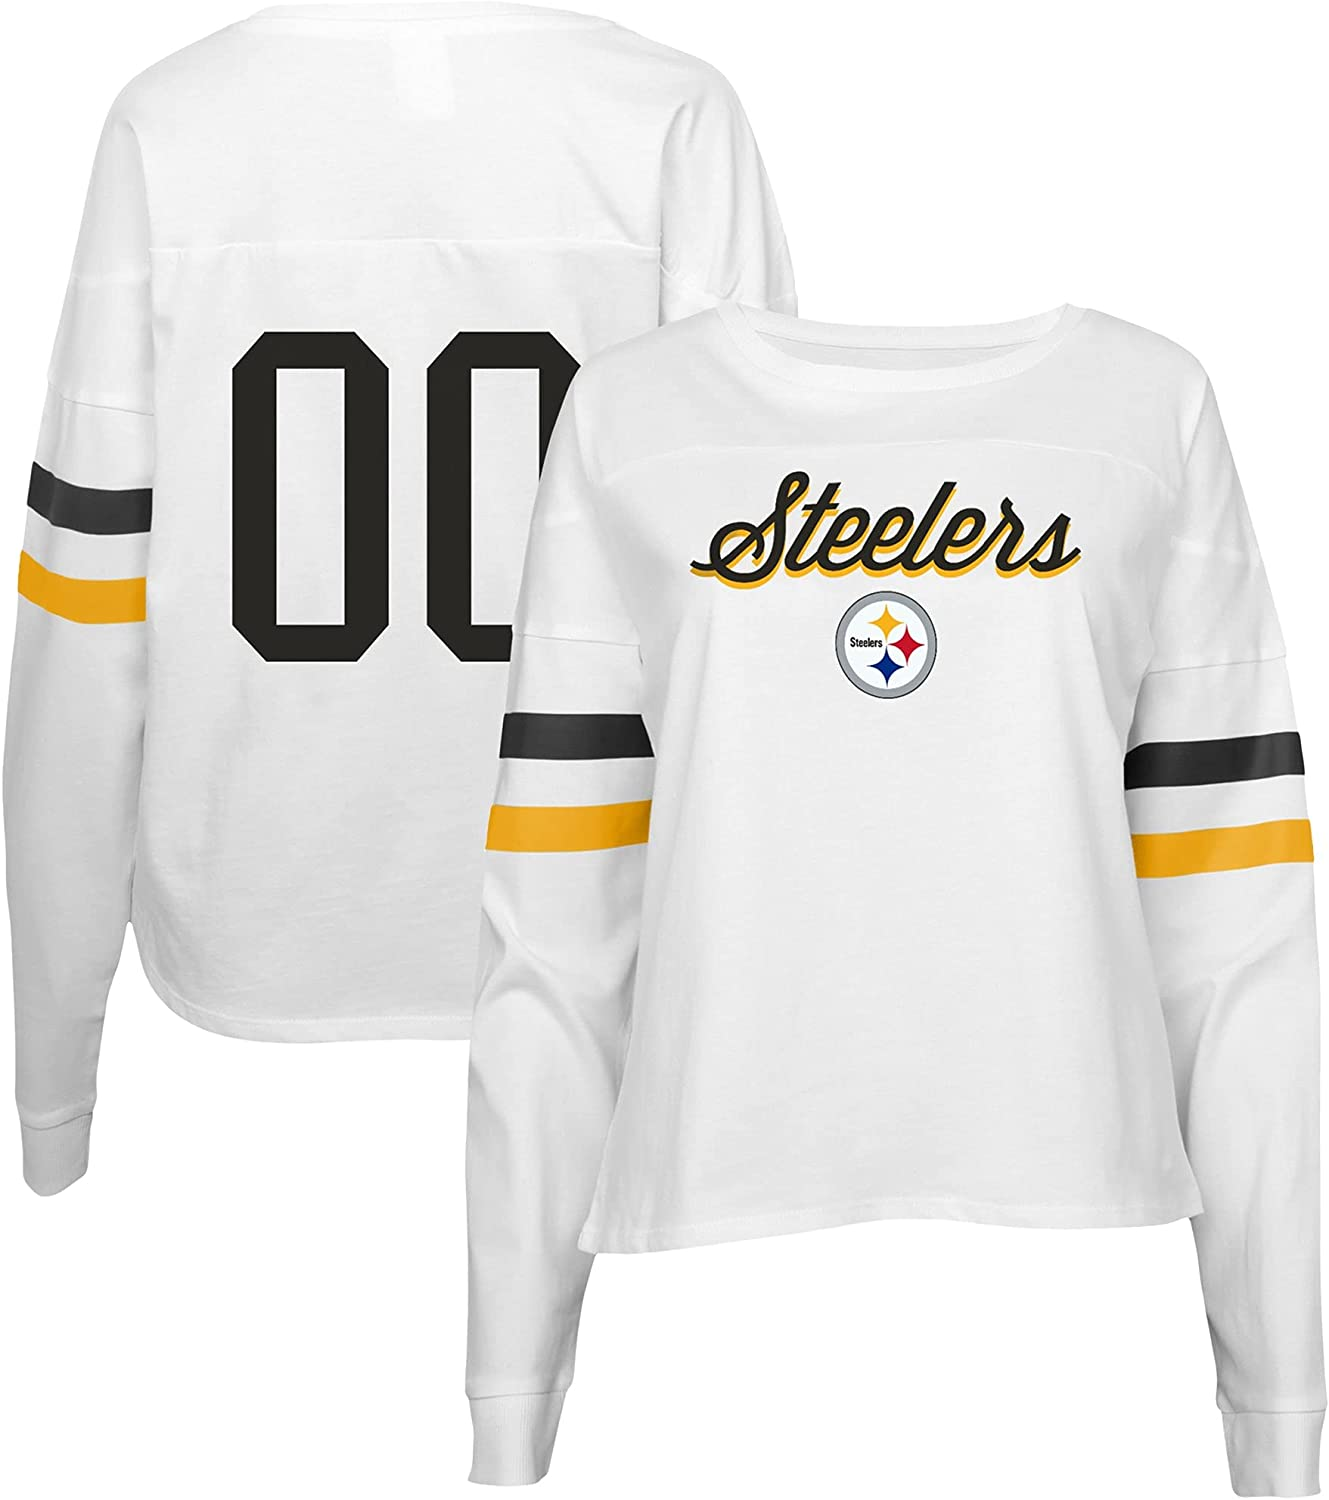 Oklahoma City Mall Outerstuff Juniors NFL Challenge the lowest price Carli T-Shirt Sleeve Long Crop